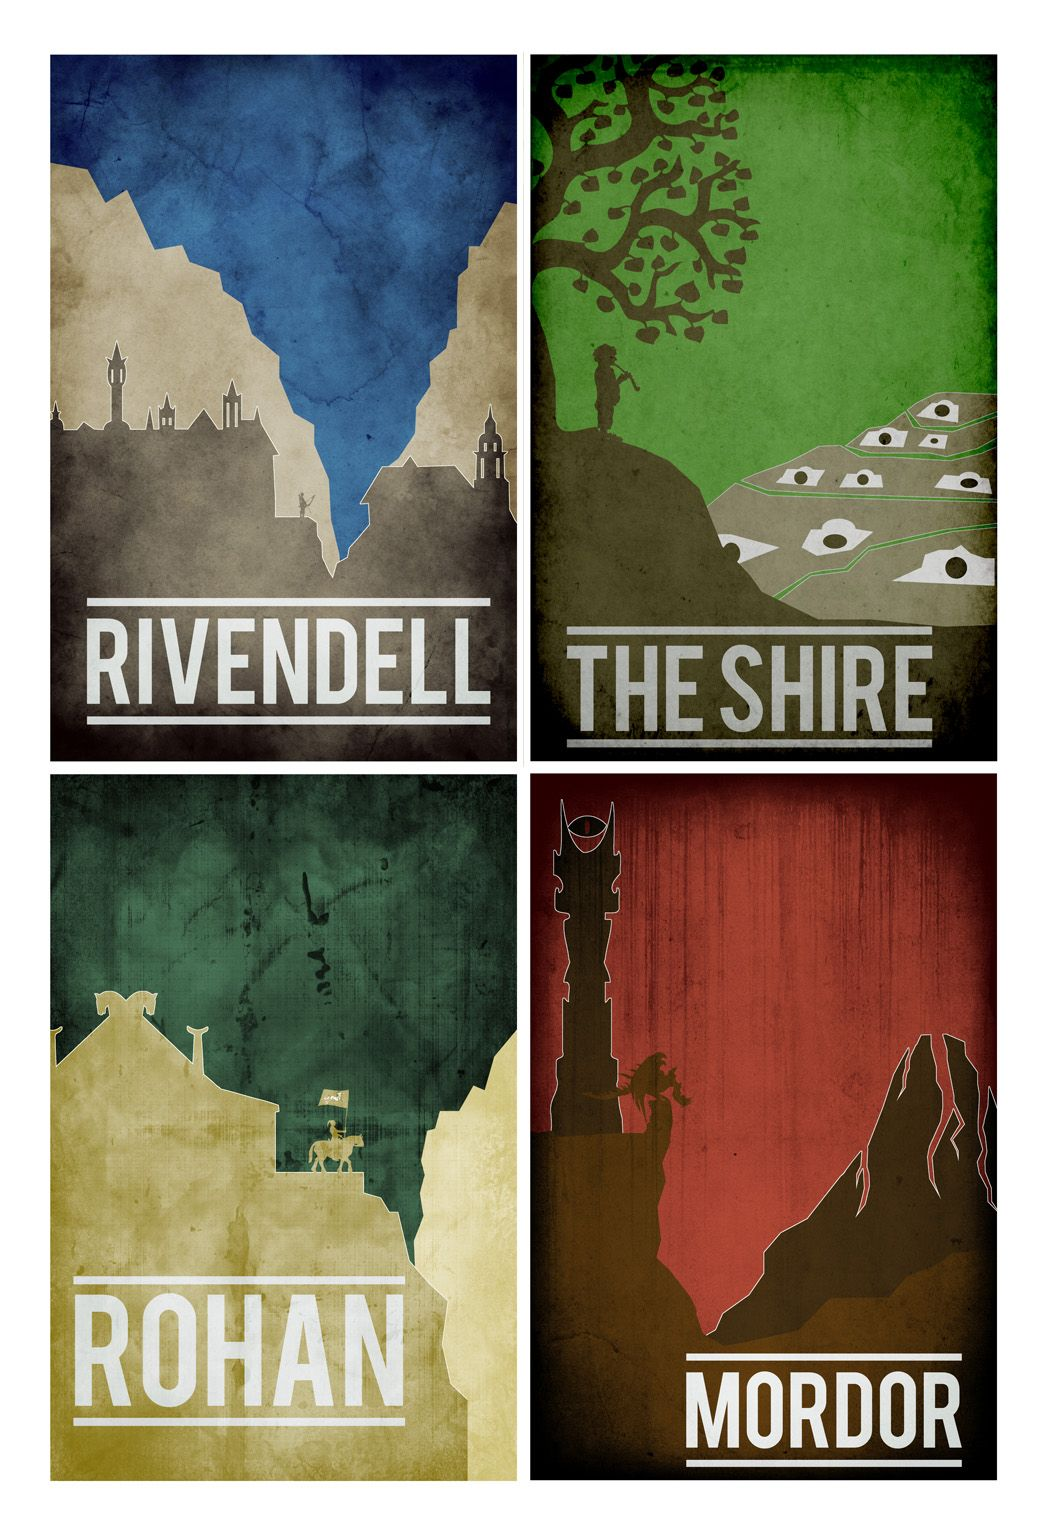 Lord of the Rings locations  I would choose The Shire to live